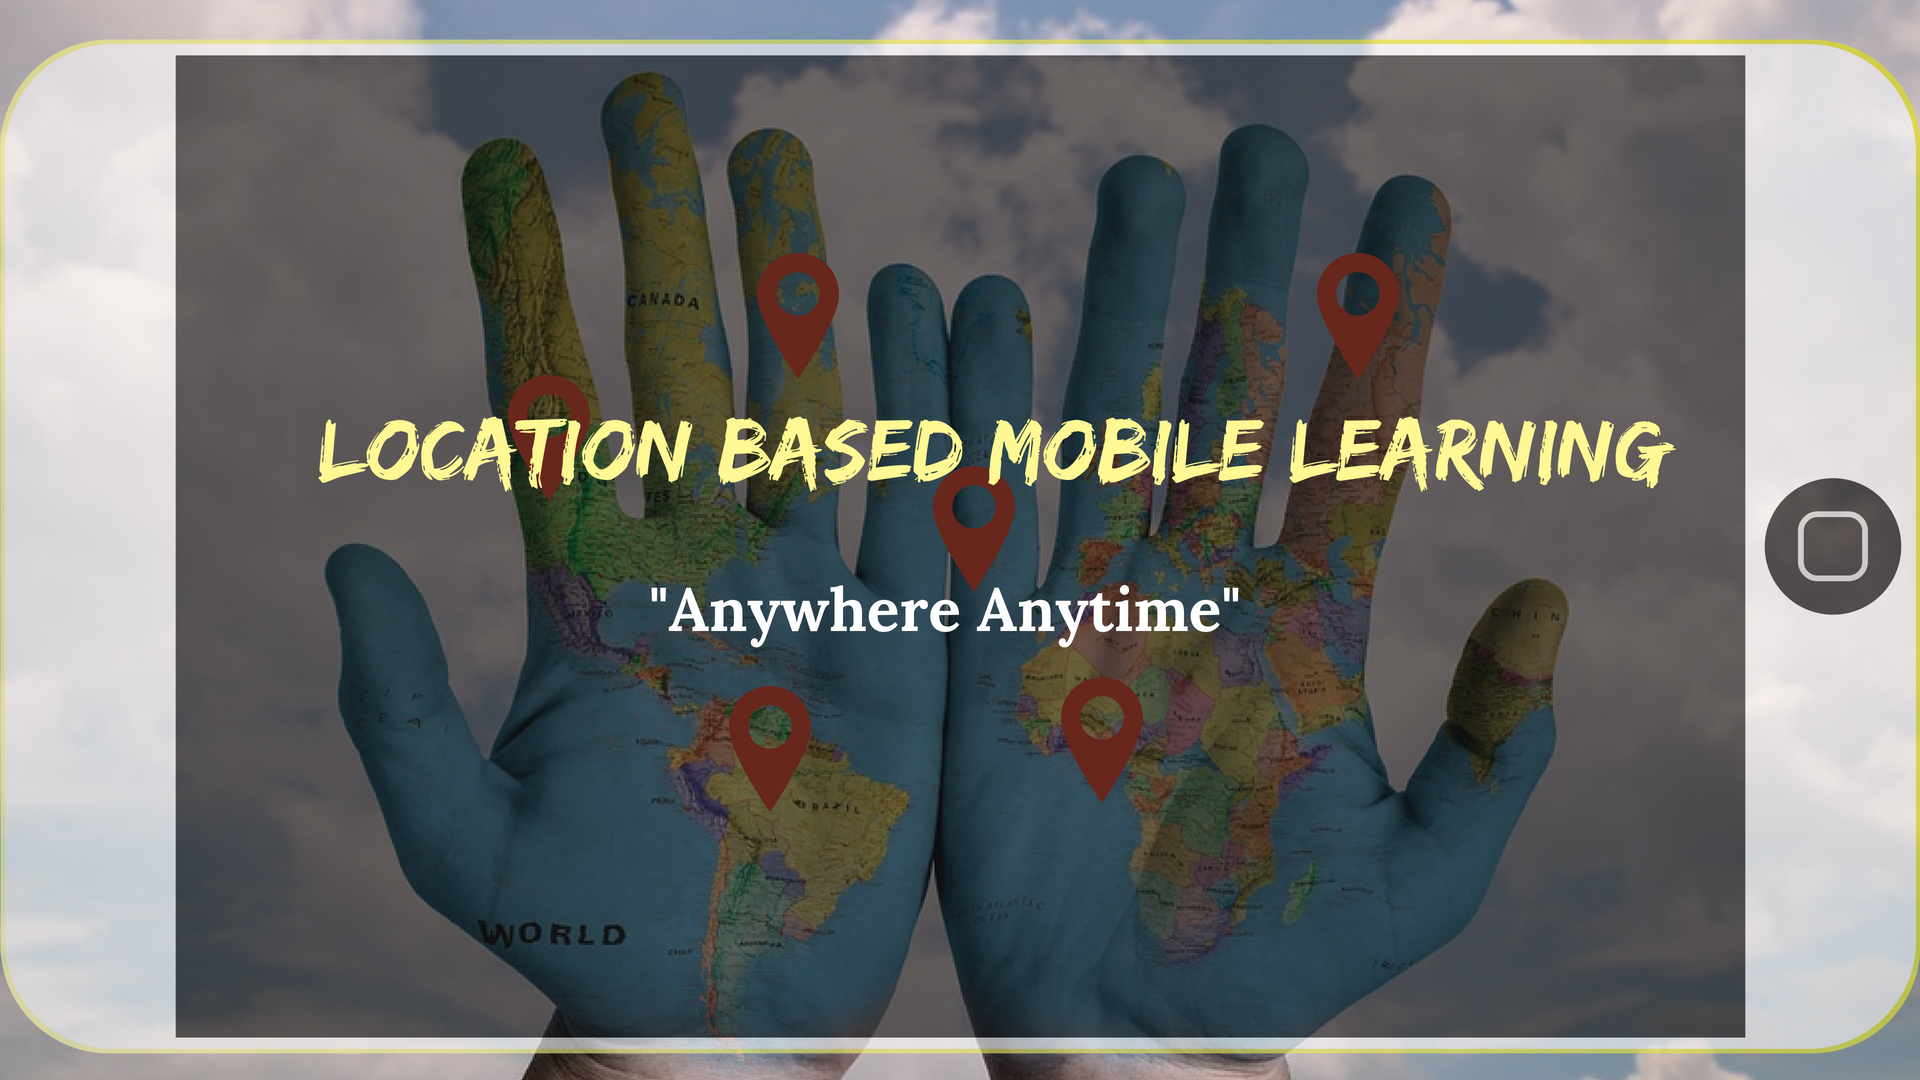 Location-based mobile learning